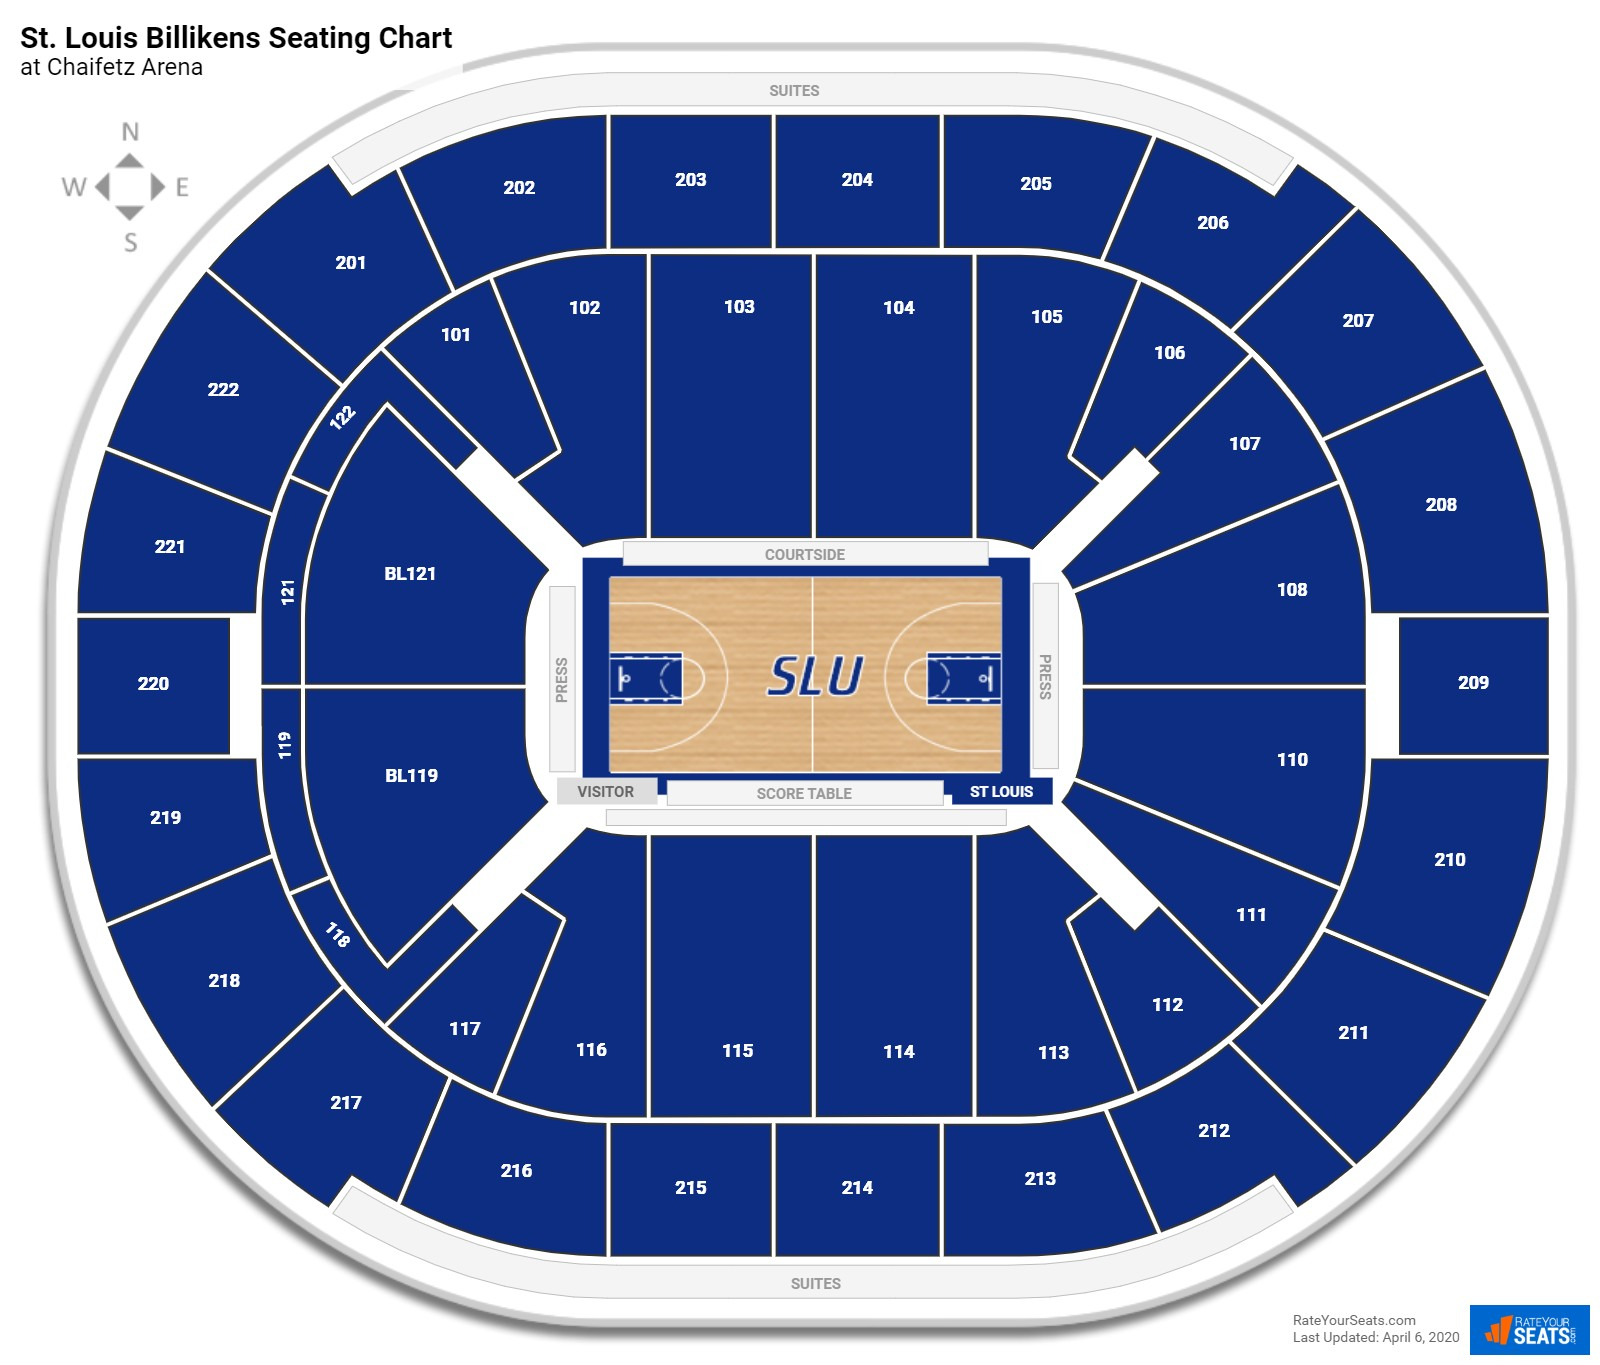 Saint Louis Basketball Seating Chart